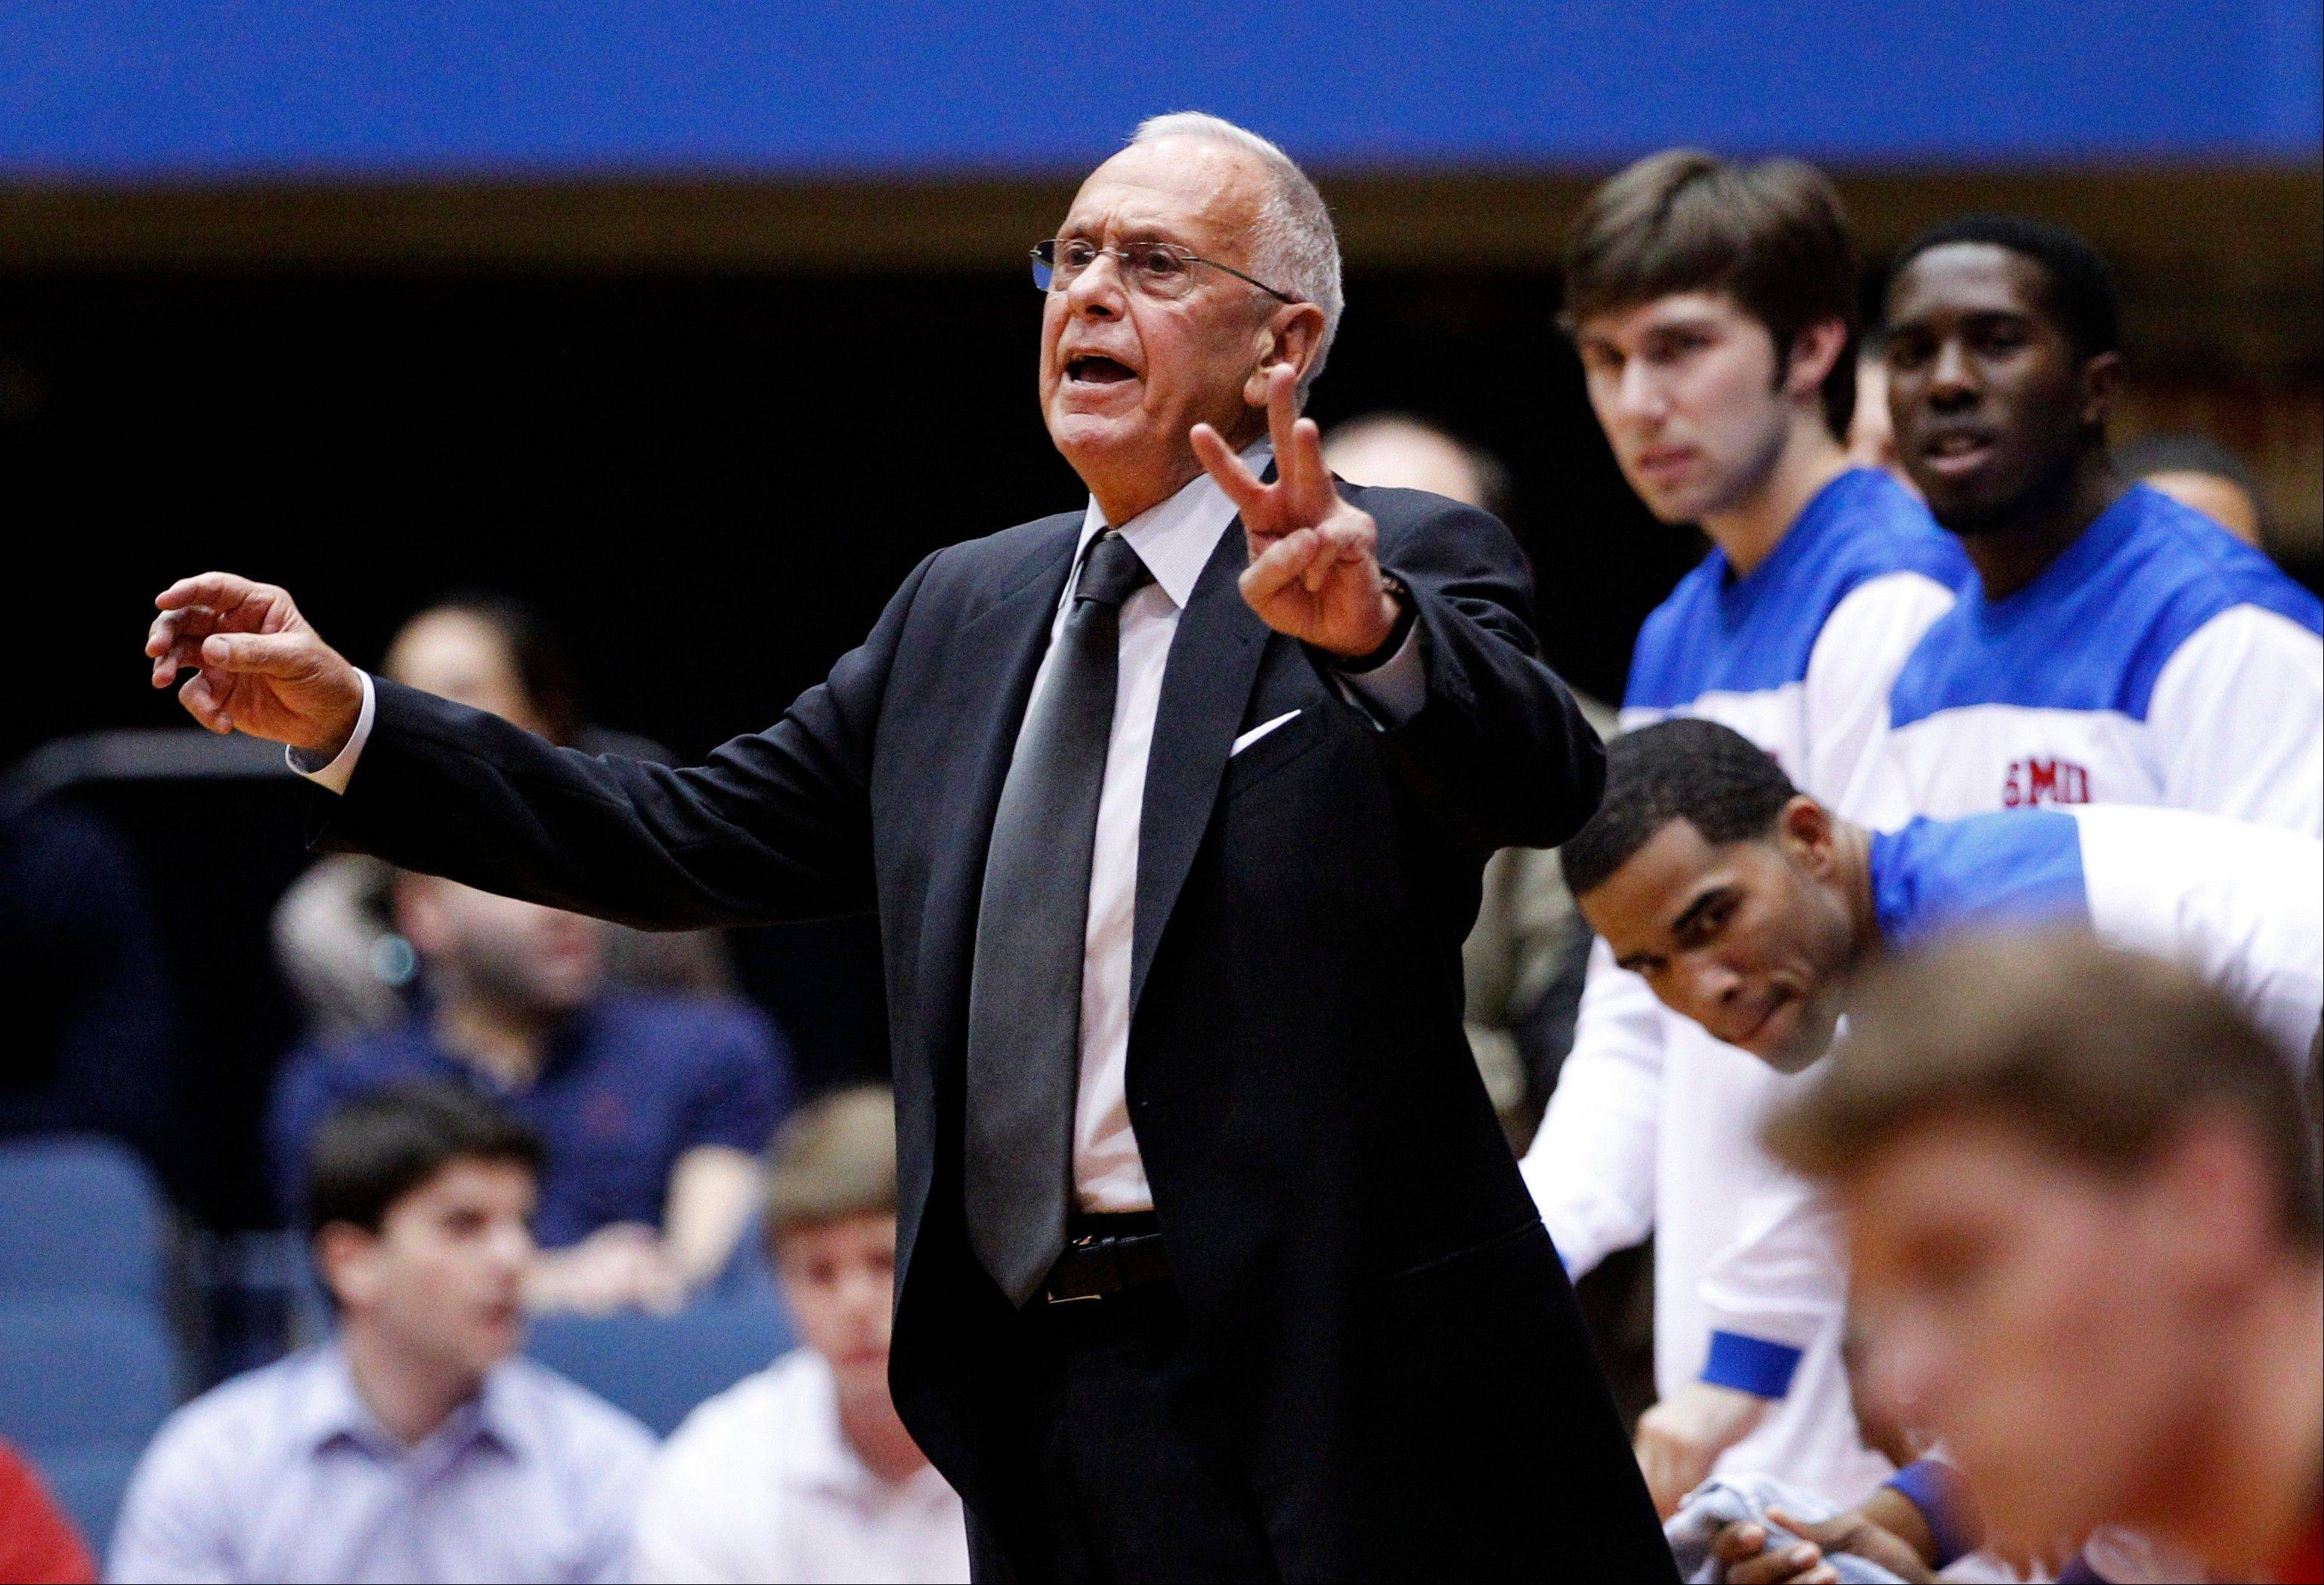 "At age 72, SMU head coach Larry Brown shows no signs of slowing down when it comes to coaching basketball. ""The only reason I took a job is because I love to coach and teach, and this school afforded me this opportunity,"" he said."